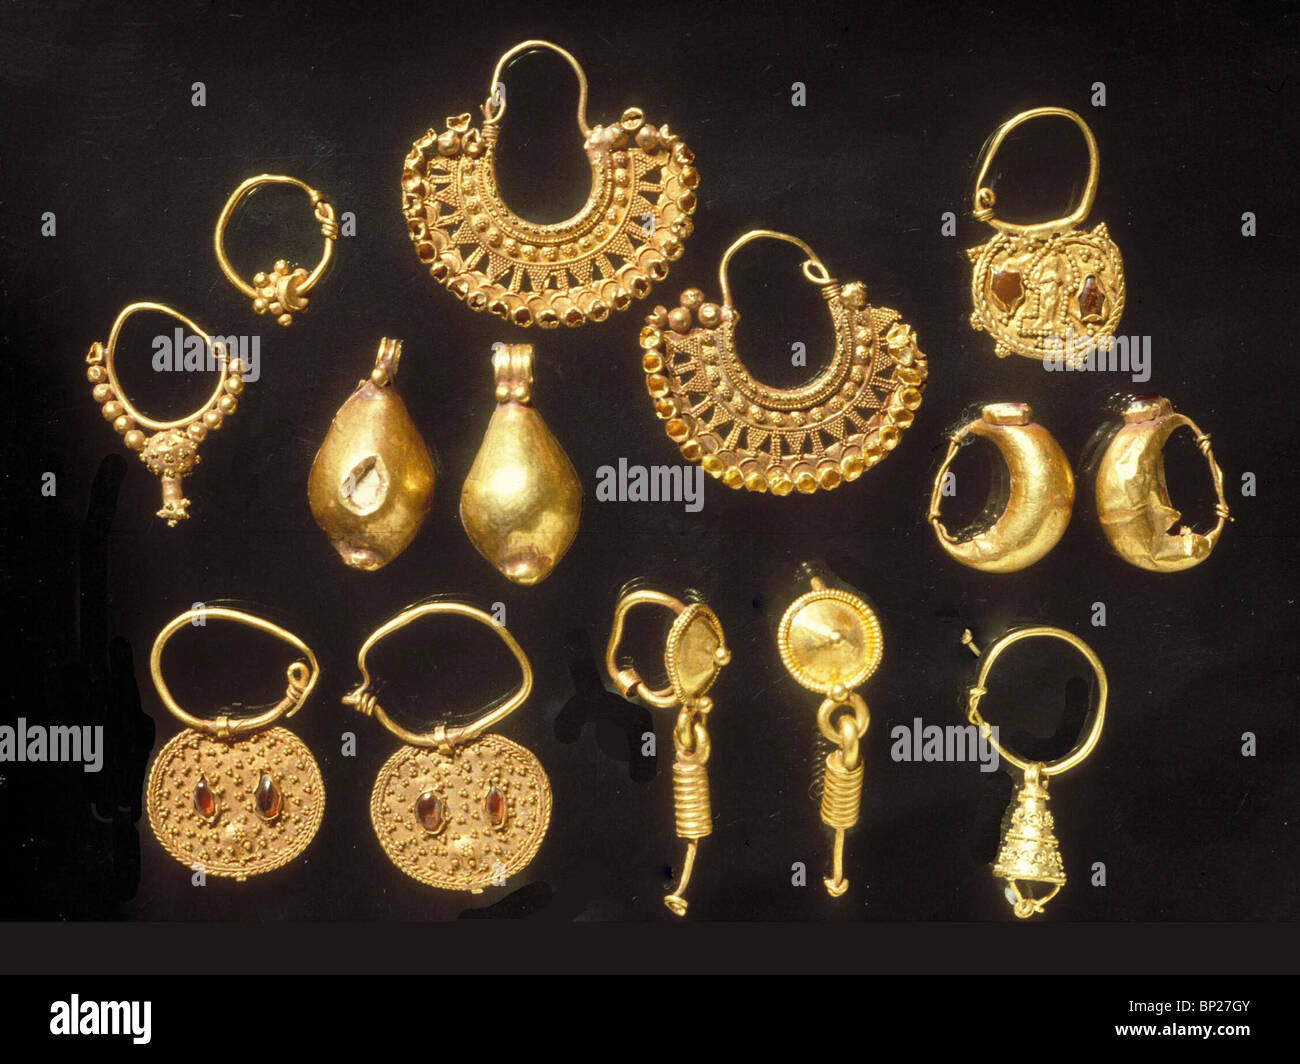 848. MEMPHIS (NORTHERN NEGEV), GROUP OF GOLDEN EARRINGS, BYZANTINE - Stock Image